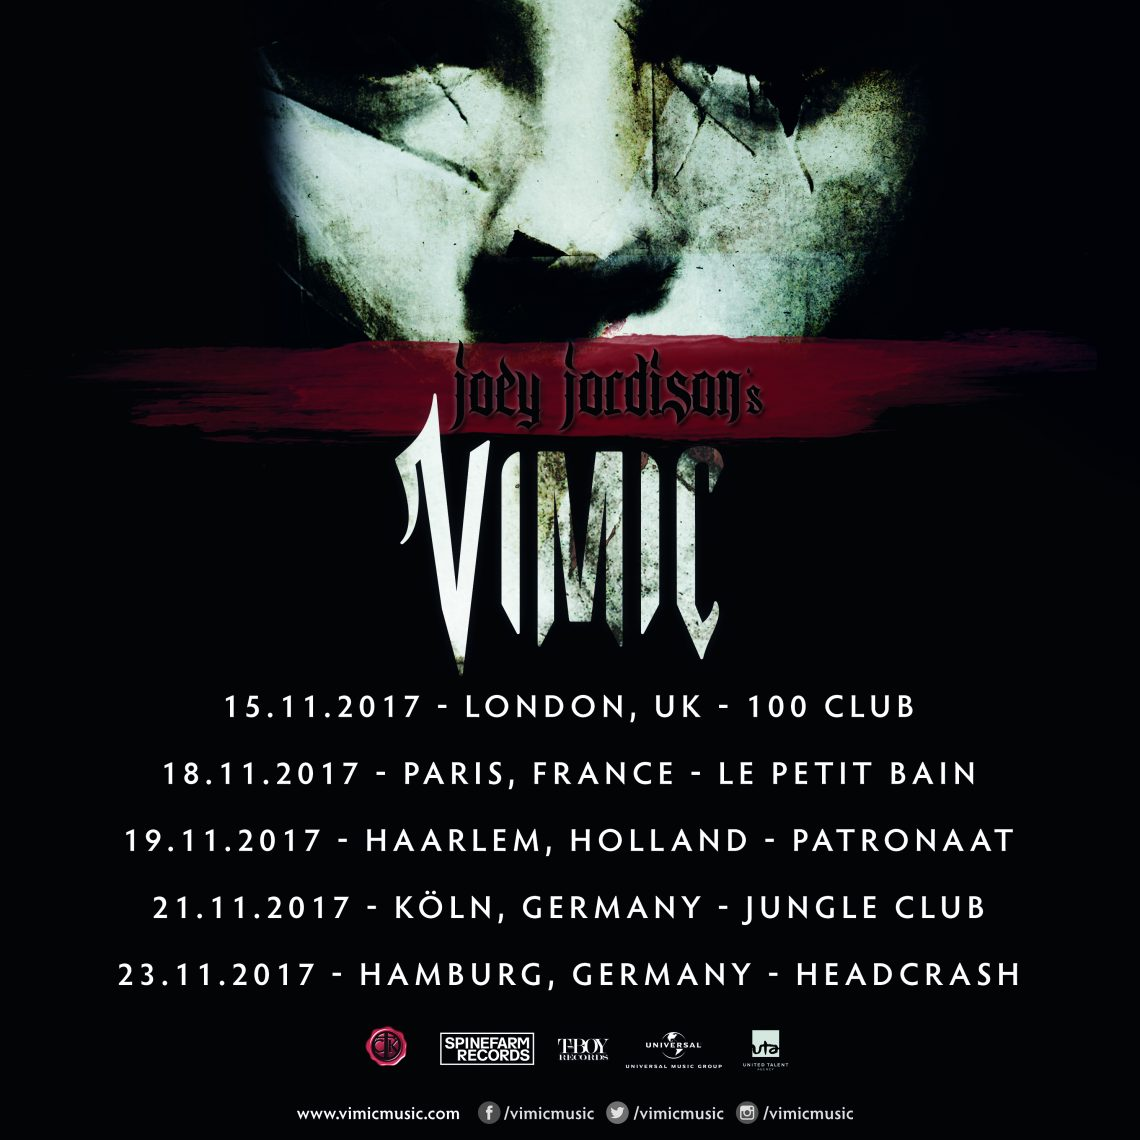 Joey Jordison's band, VIMIC announce one-off UK show